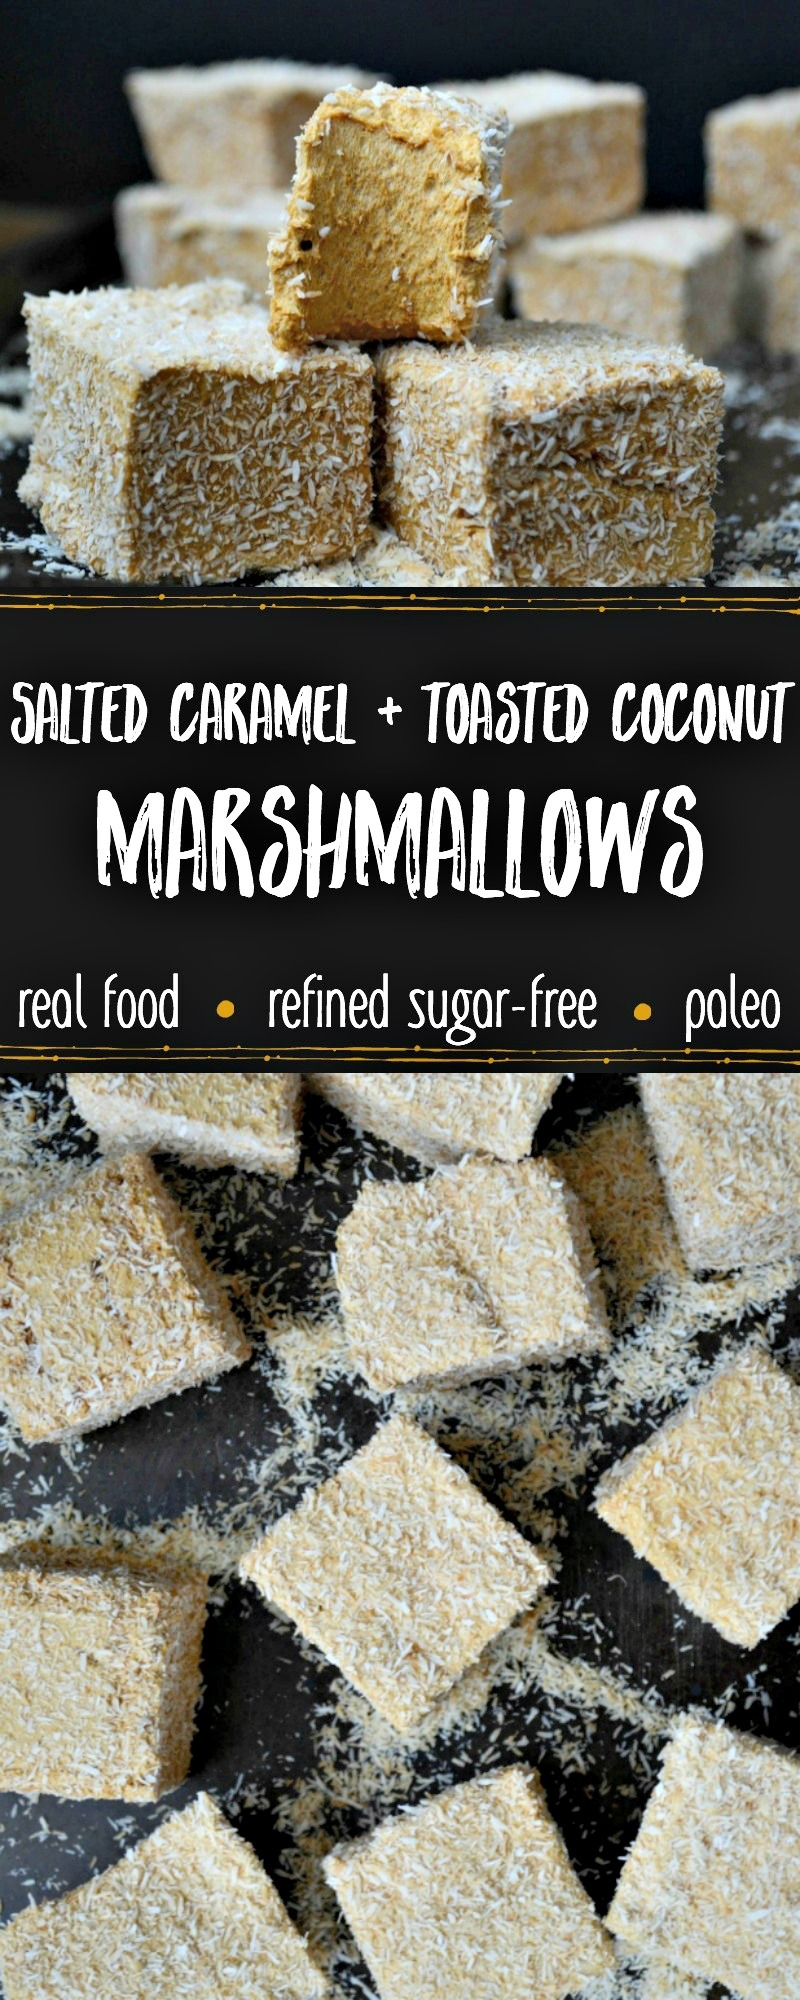 cube marshmallows covered in toasted coconut